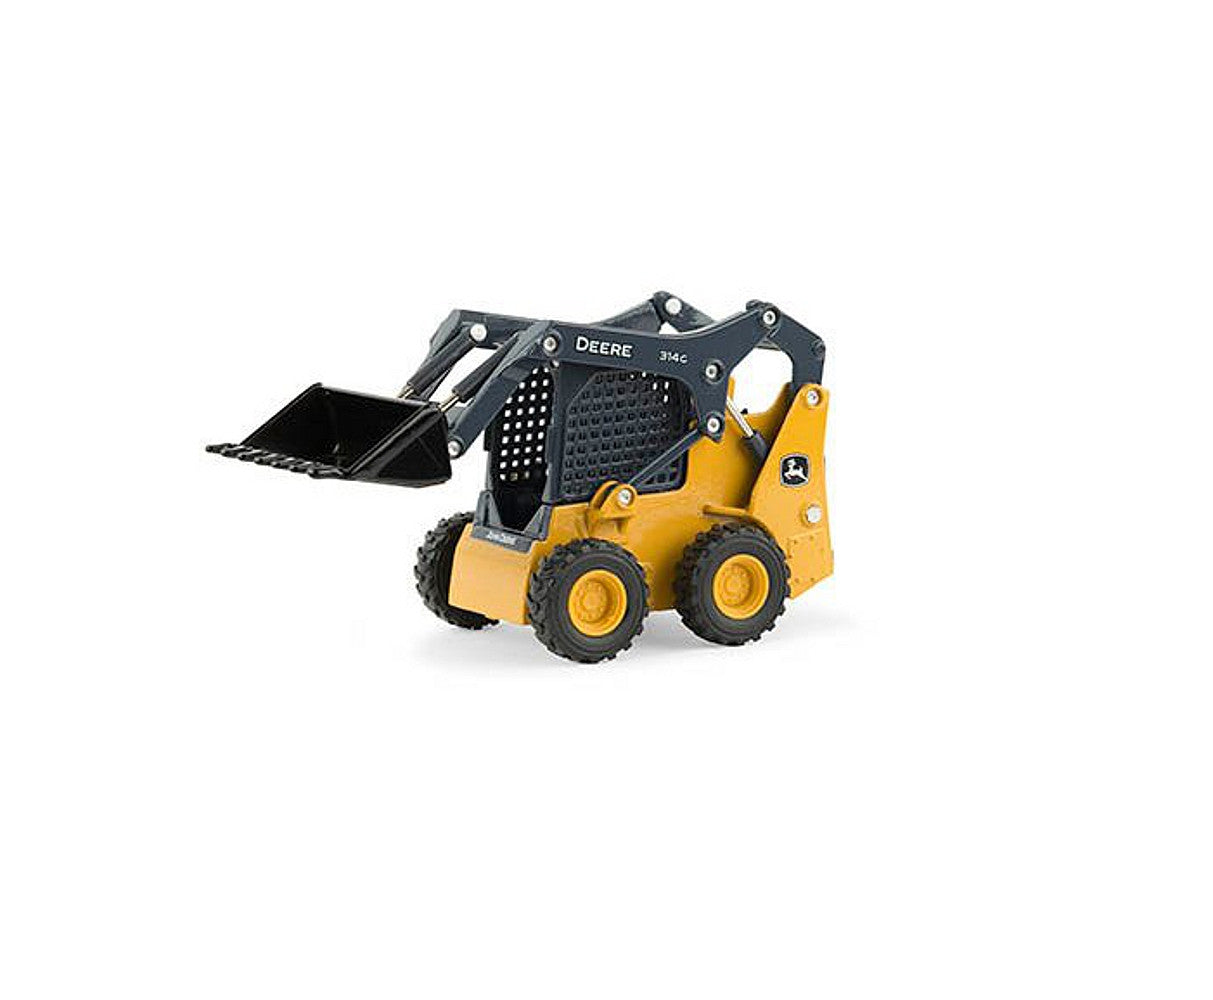 1/32 Scale John Deere 314G Skid Steer by Ertl #45562 - LP64455